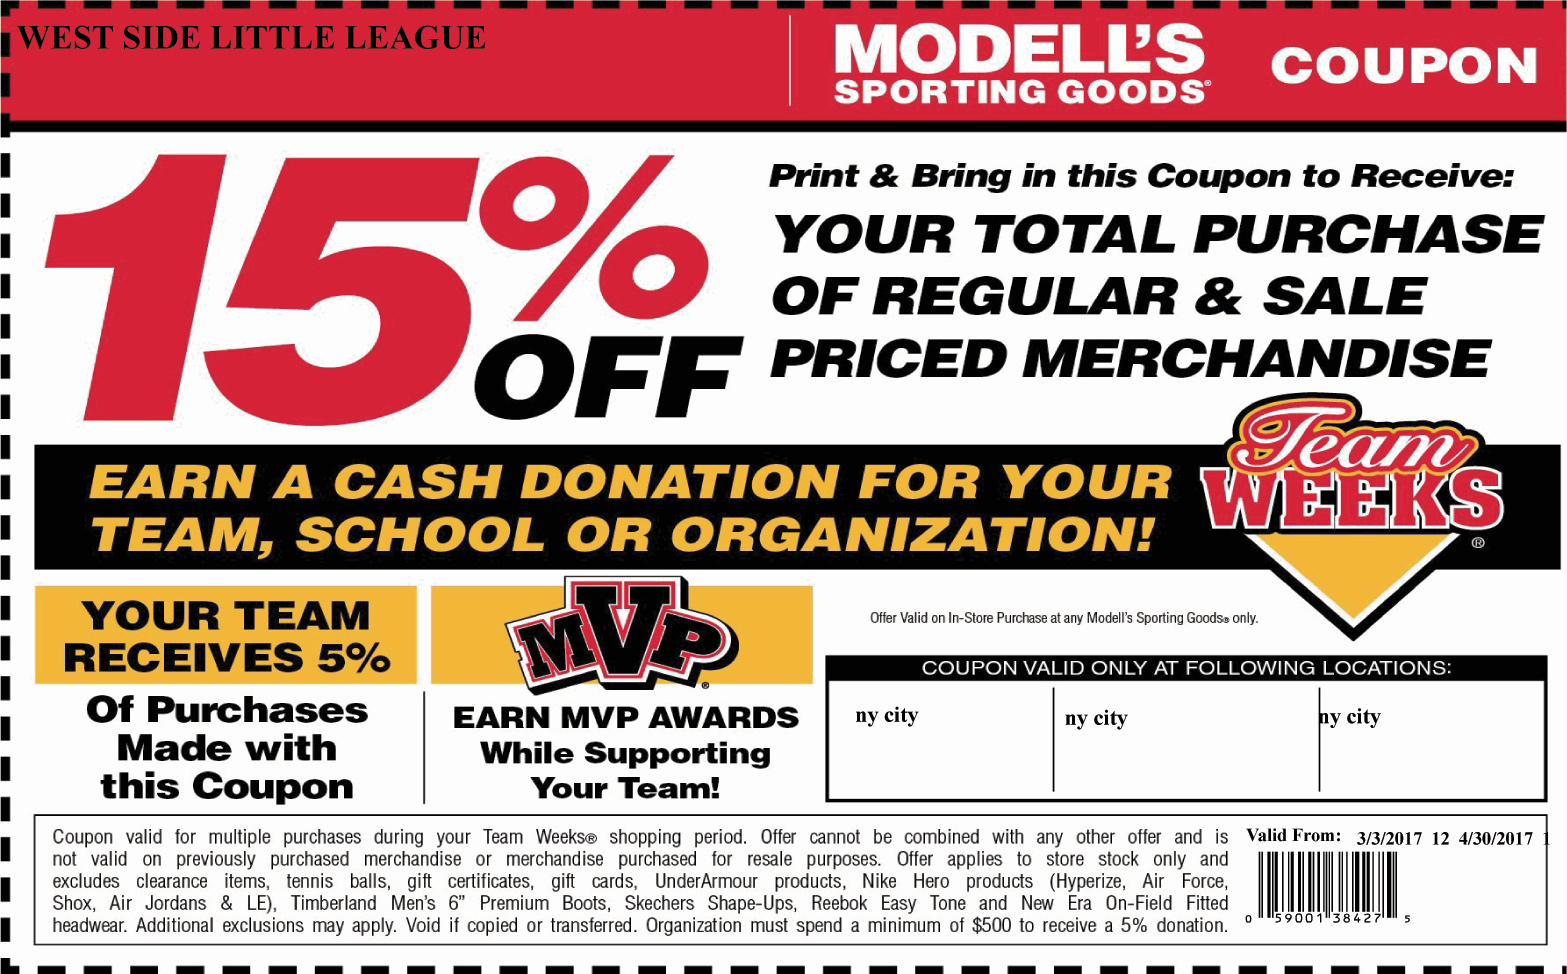 image about Modells Printable Store Coupon titled West Aspect Very little League - Refreshing York Metropolis: House Web site